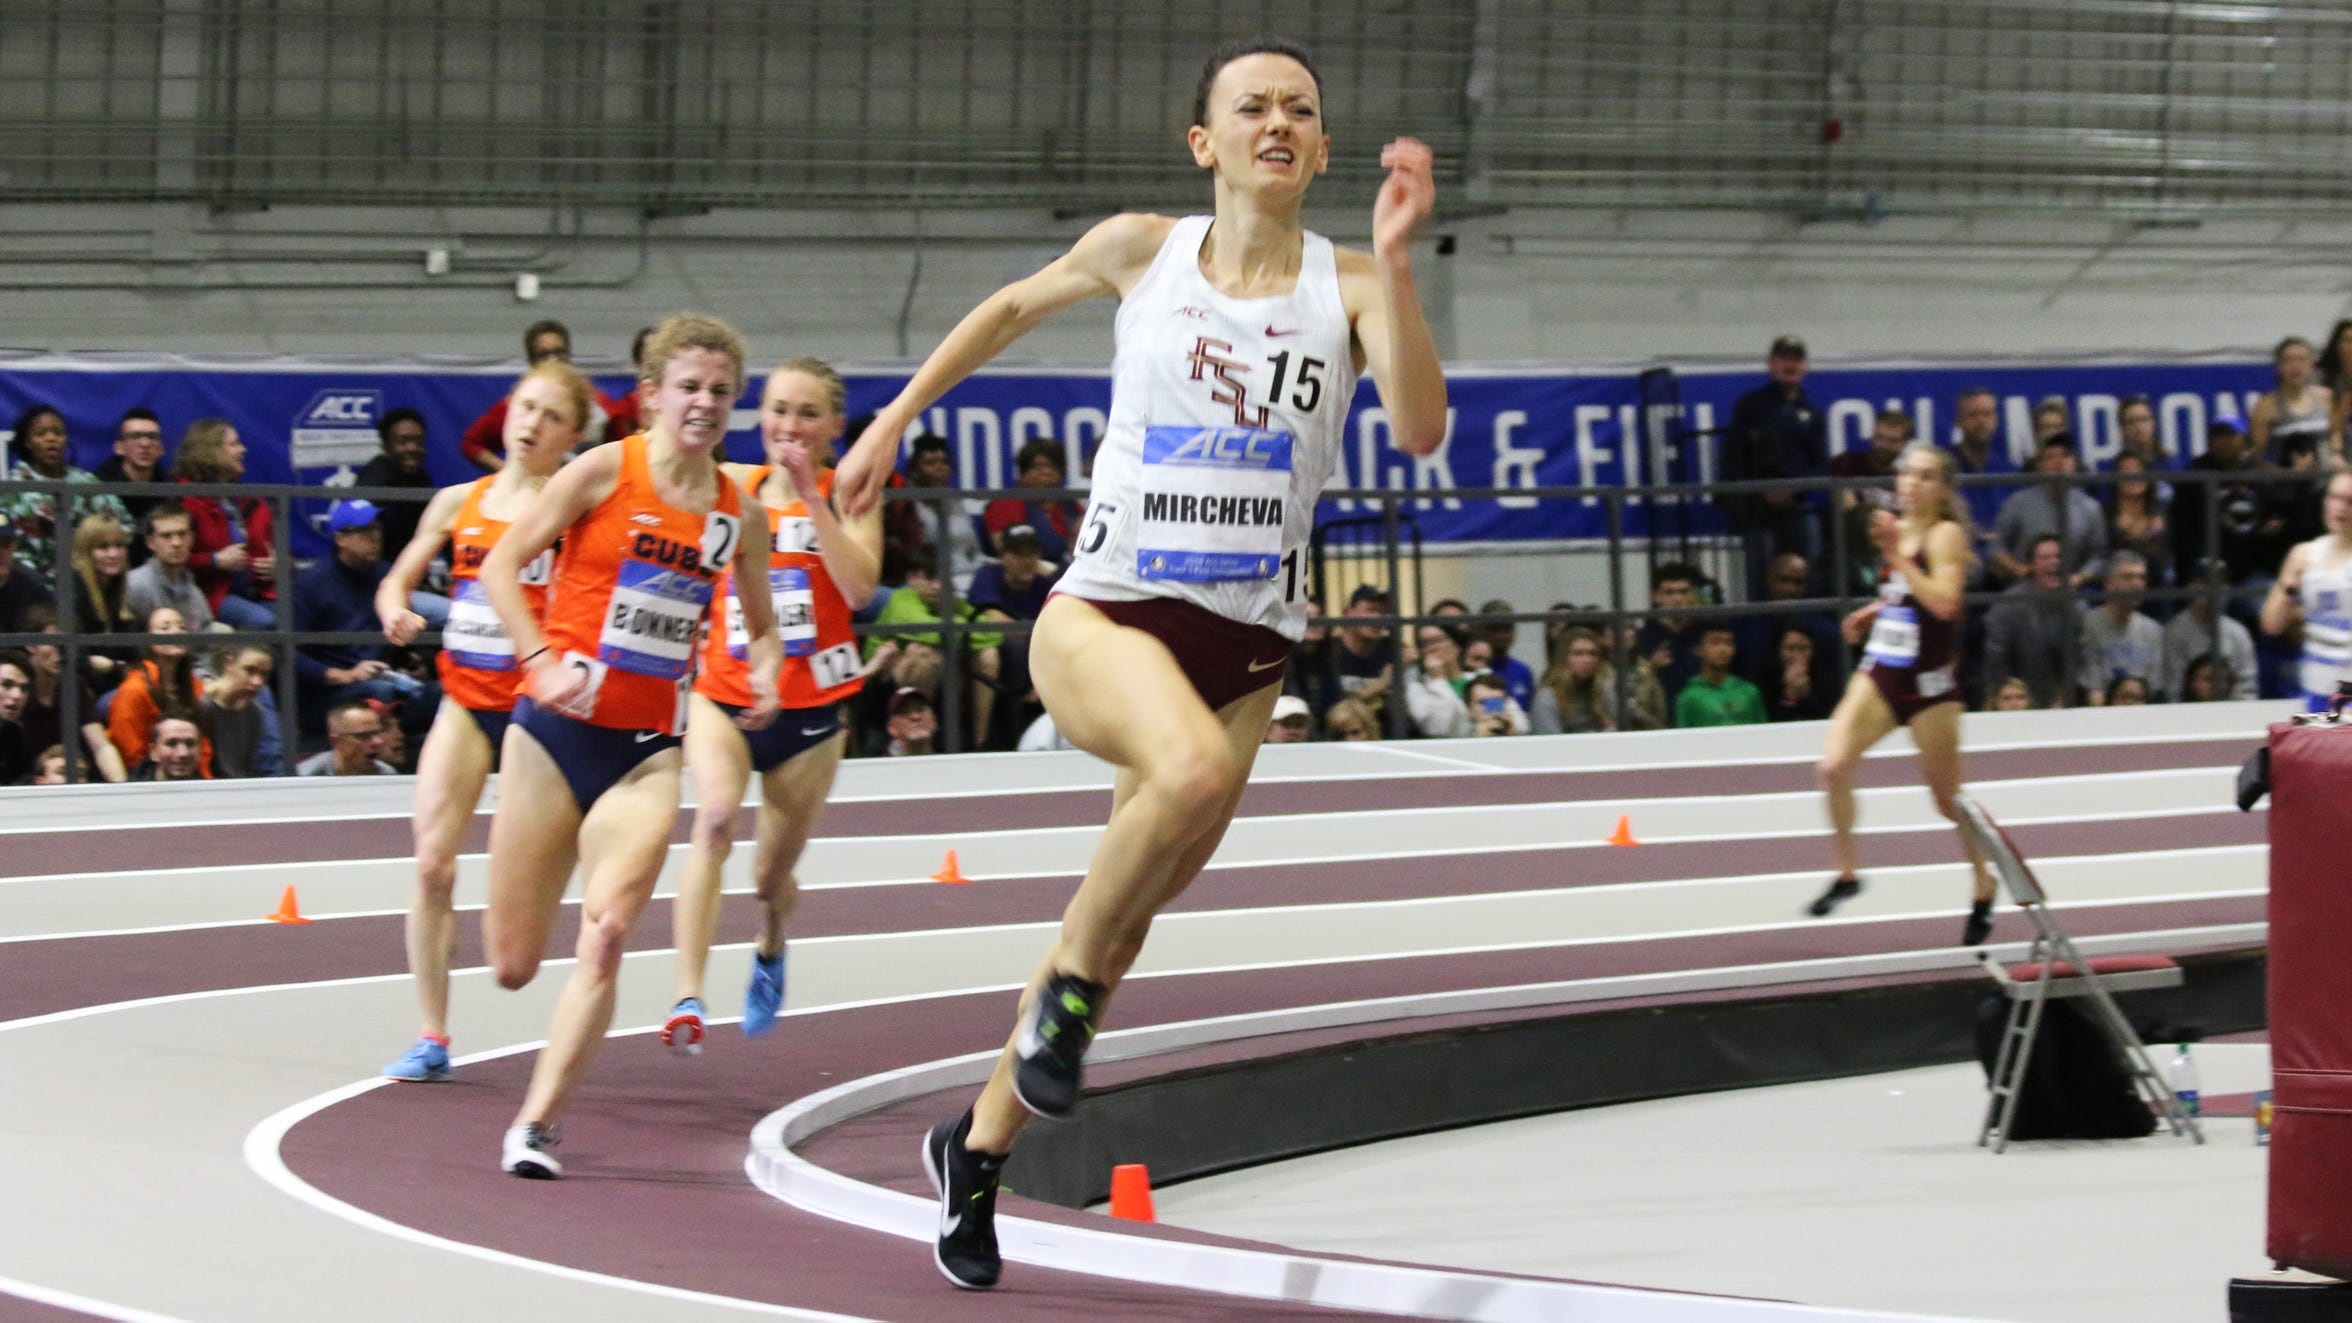 Militsa Mircheva's bold final lap move with 150 meters remaining at the ACC Indoor Track & Field Championships moved her from sixth to third, a position she refused to relinquish.